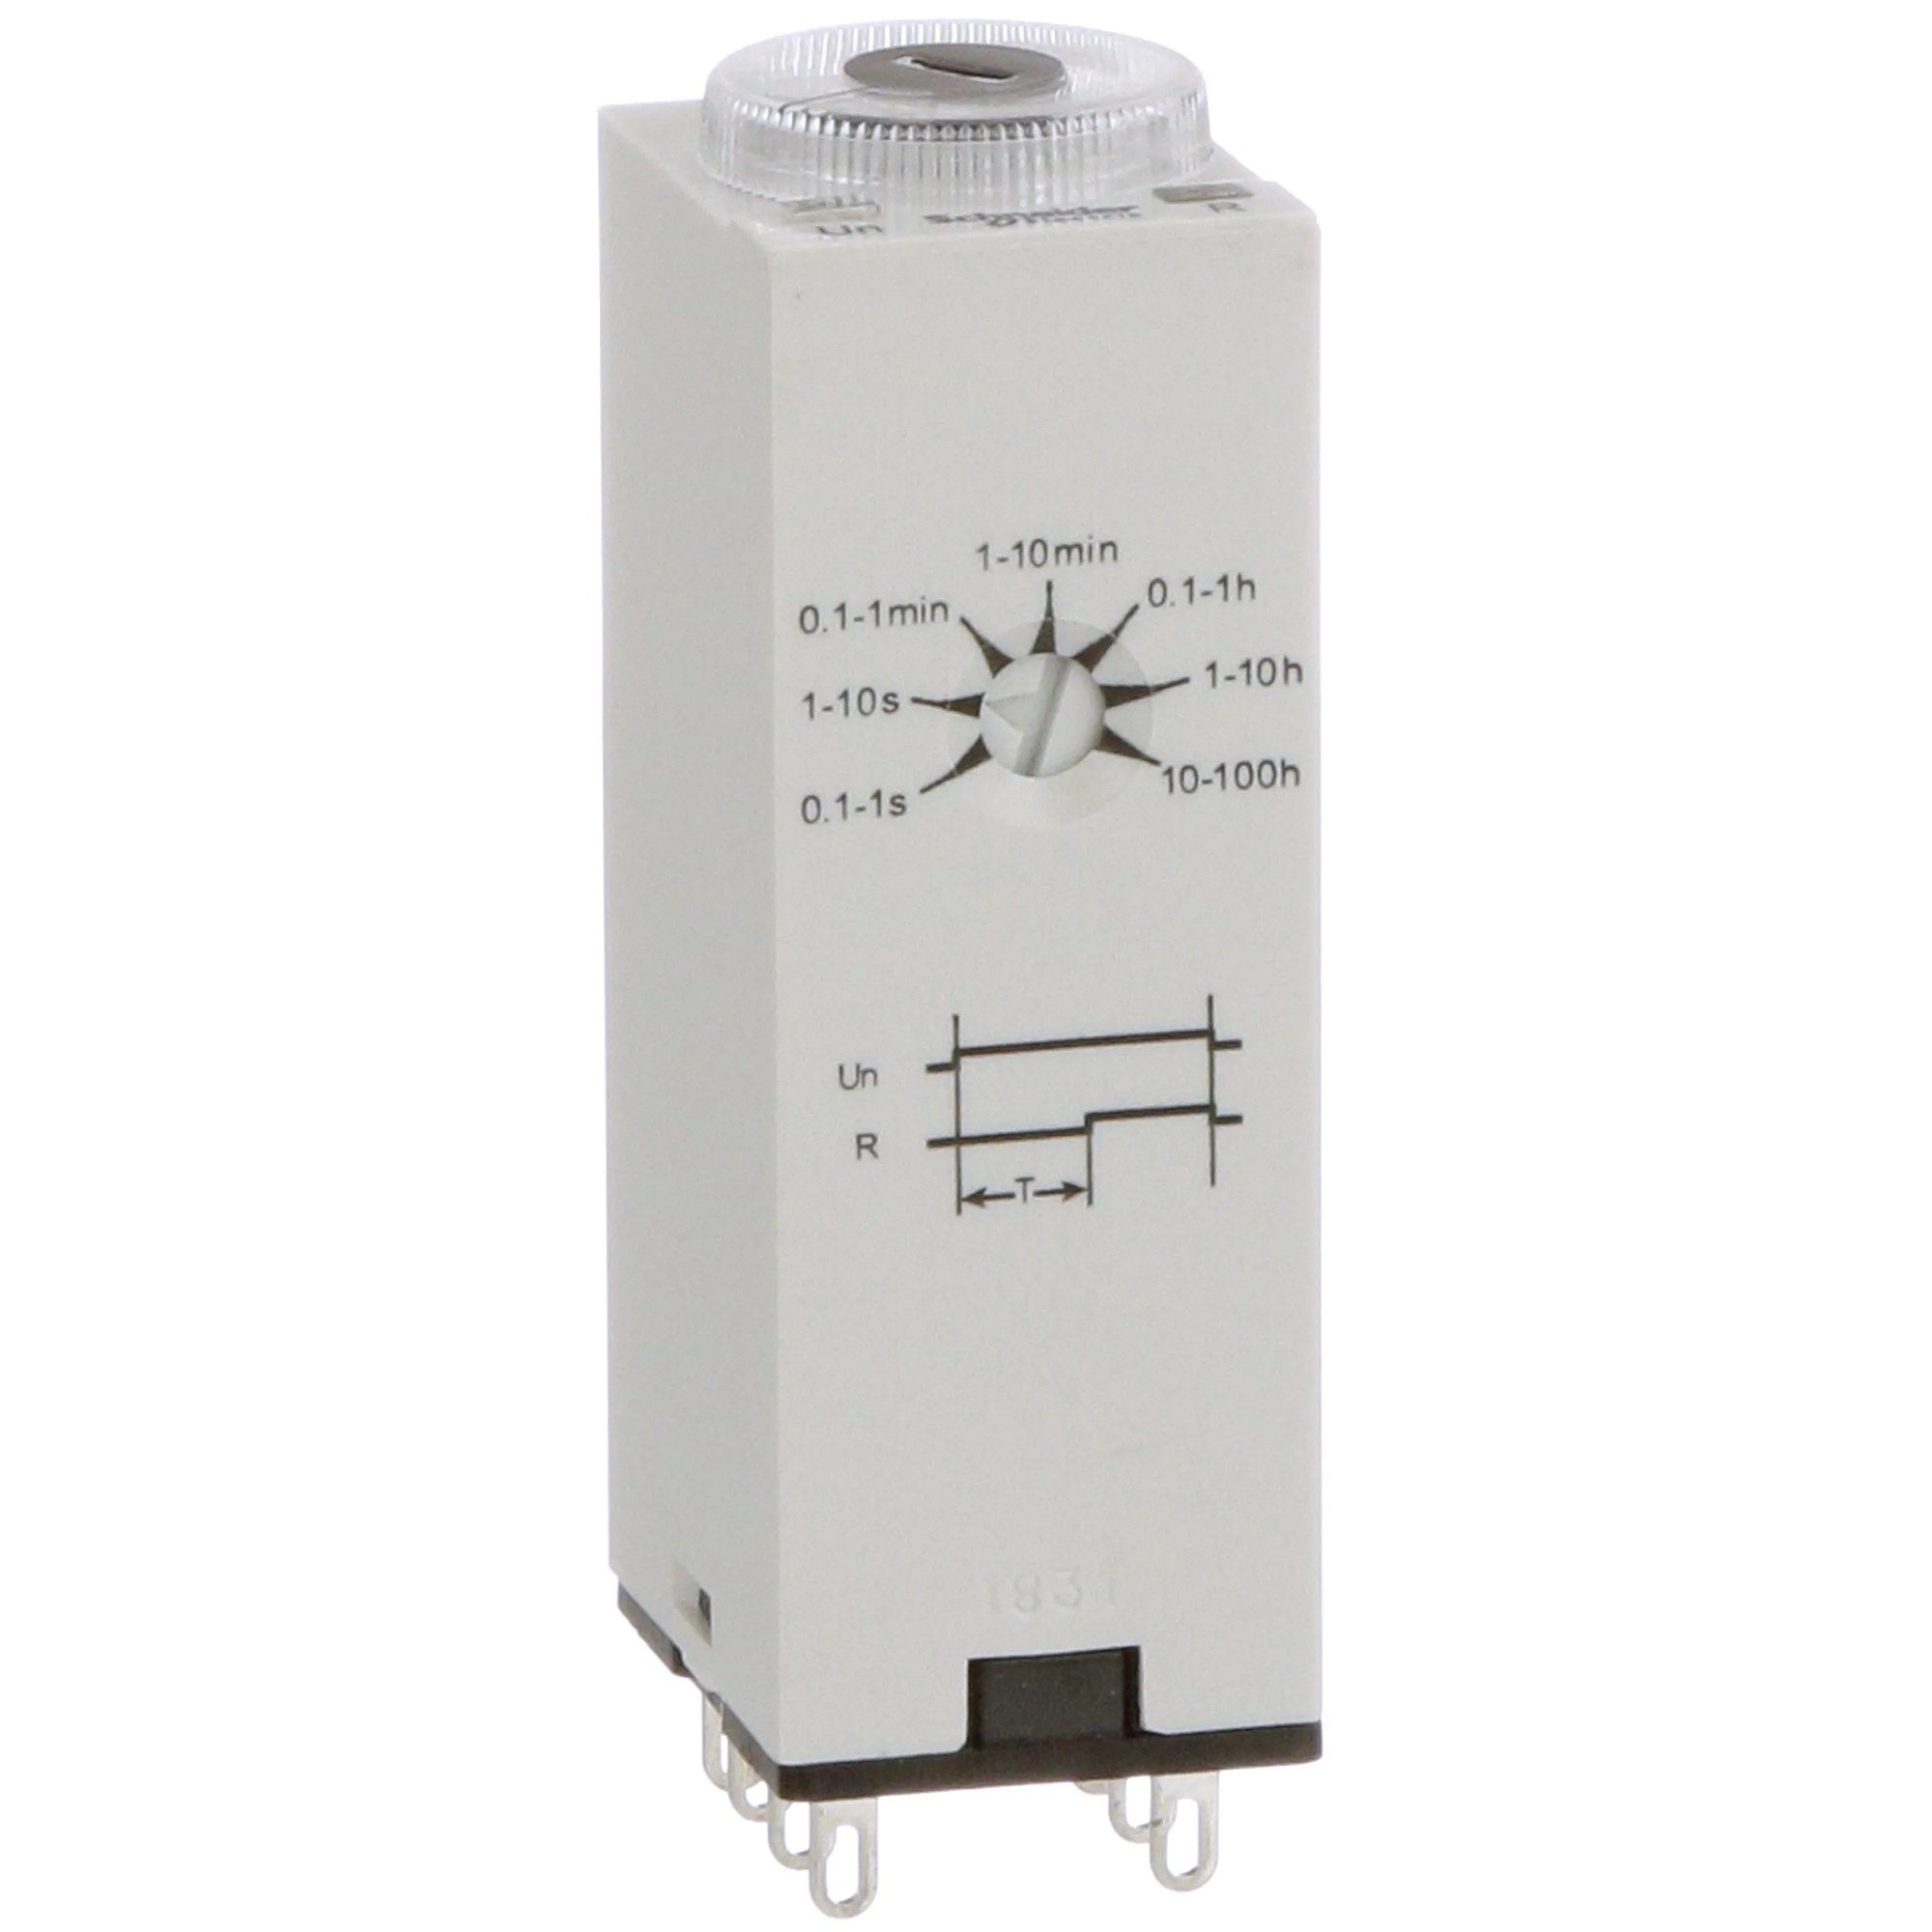 hight resolution of schneider electric legacy relays tdr782xbxa 110a relay e mech timing on delay dpdt cur rtg 5a ctrl v 110ac socket mnt plug in allied